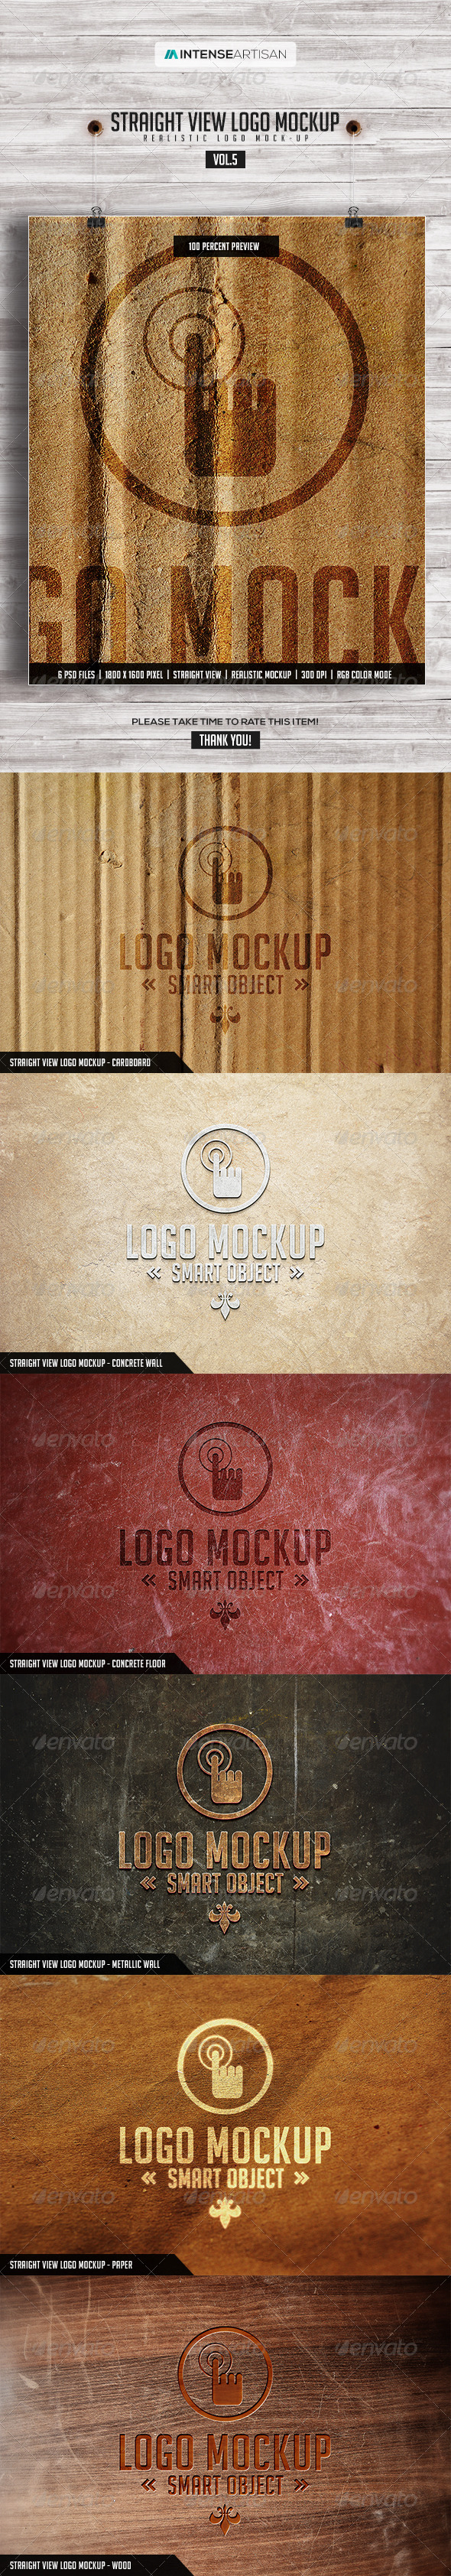 GraphicRiver Straight View Logo Mockup Vol.5 7720331